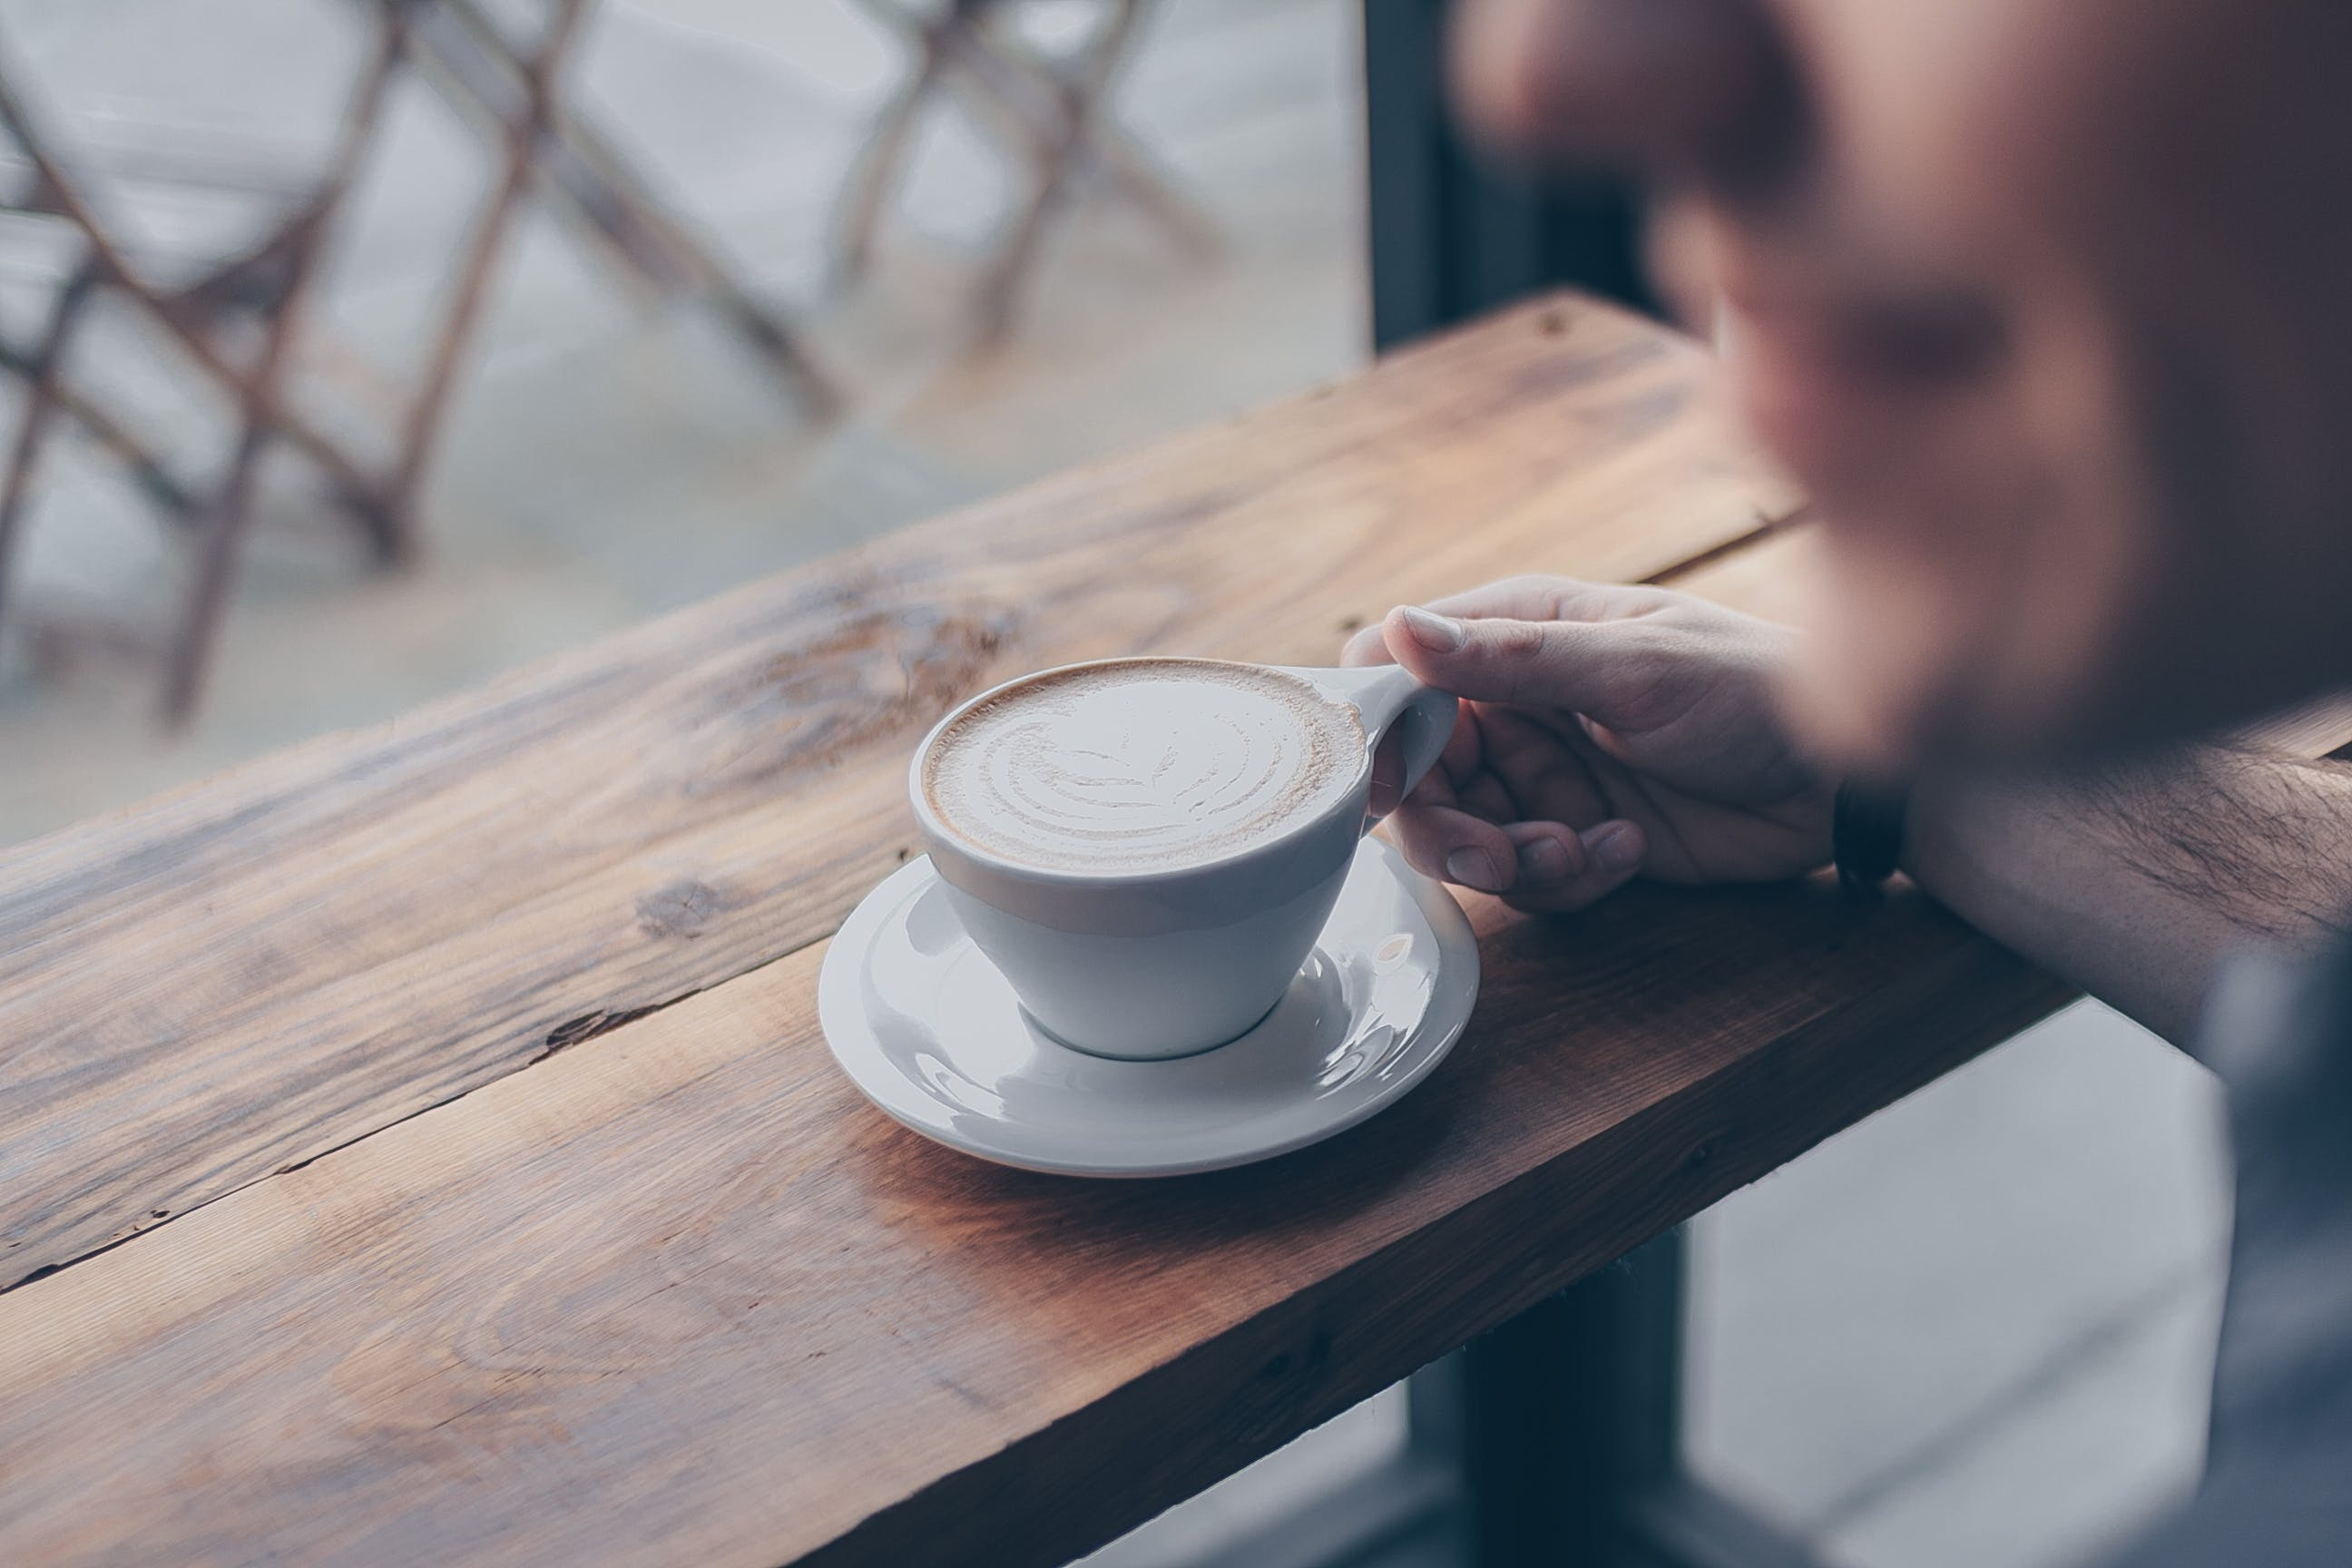 Person Holding White Mug Filled With Coffee